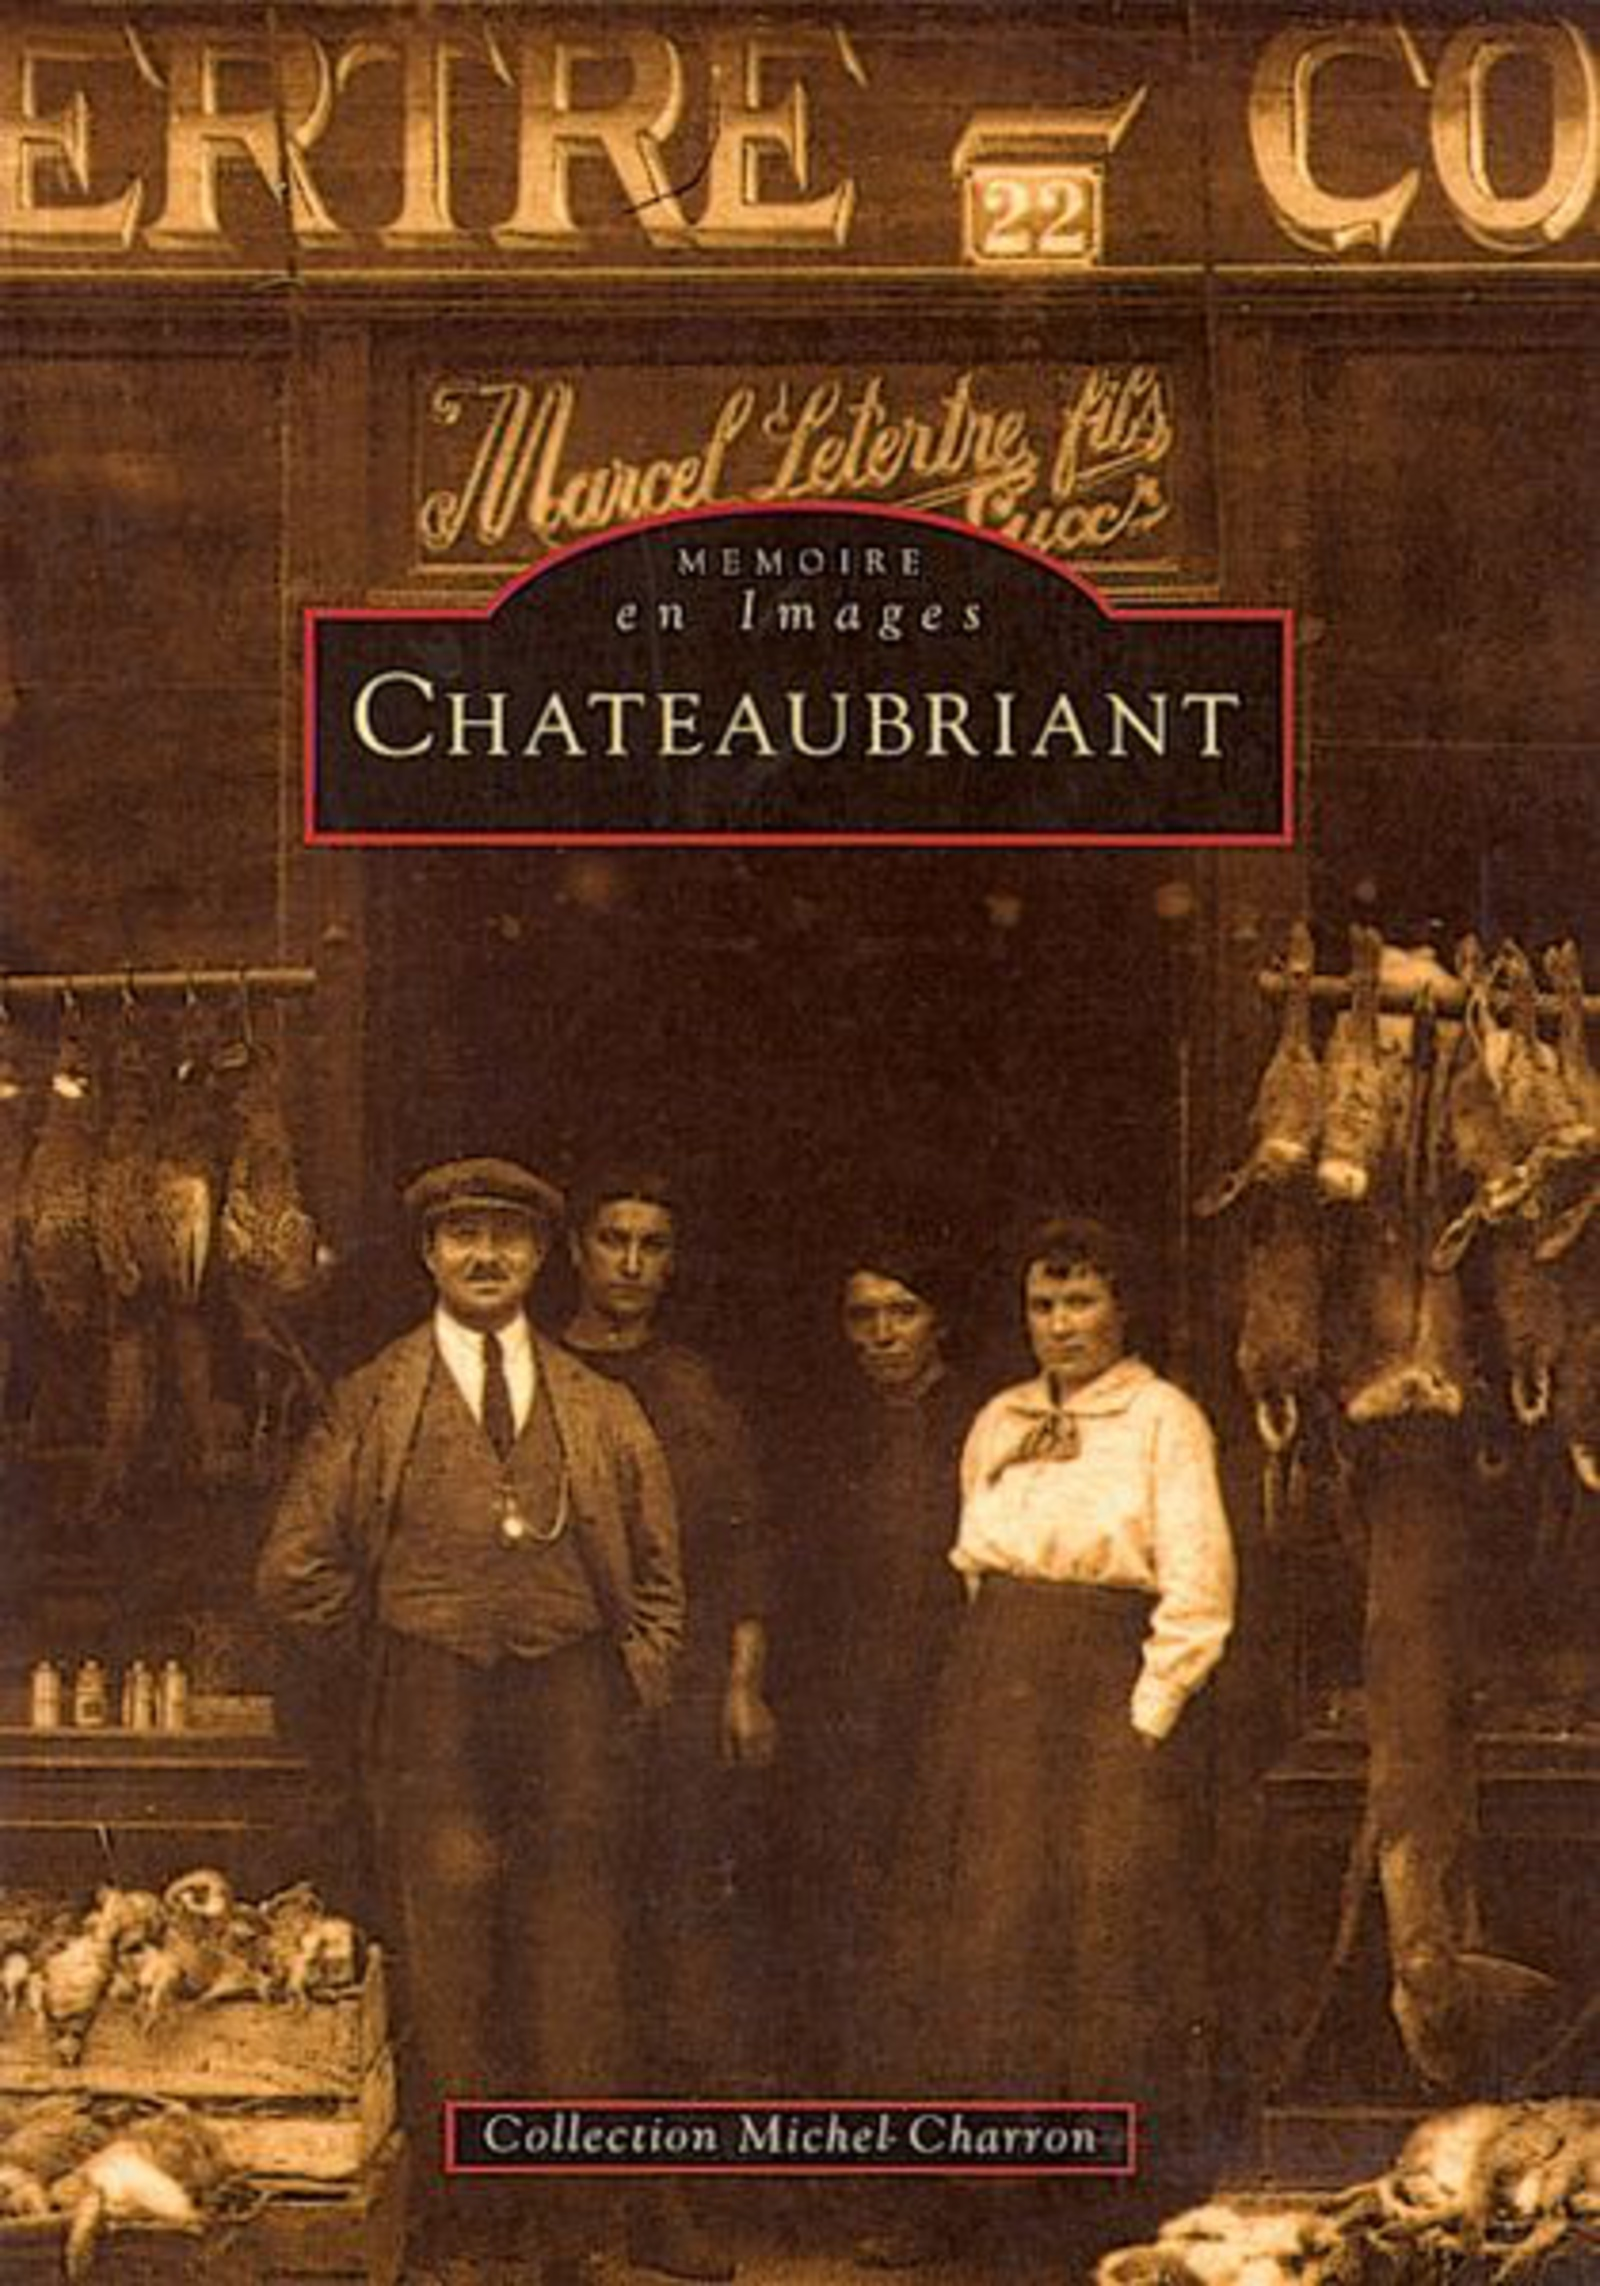 CHATEAUBRIANT